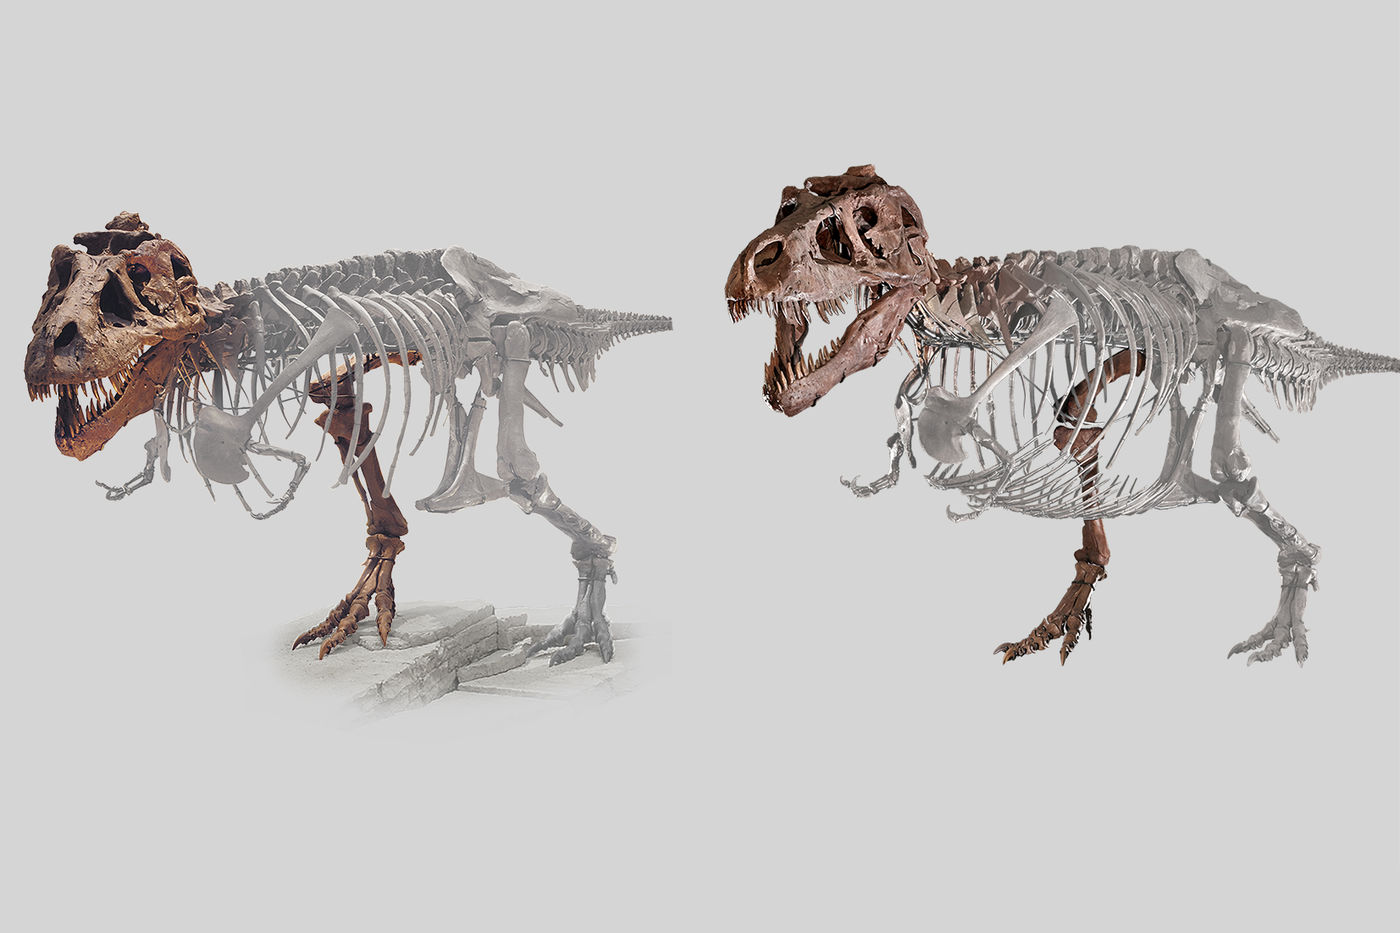 Side-by-side graphic of SUE the T. rex, showing before and after changes. The areas that have been moved or changed are highlighted in gray.